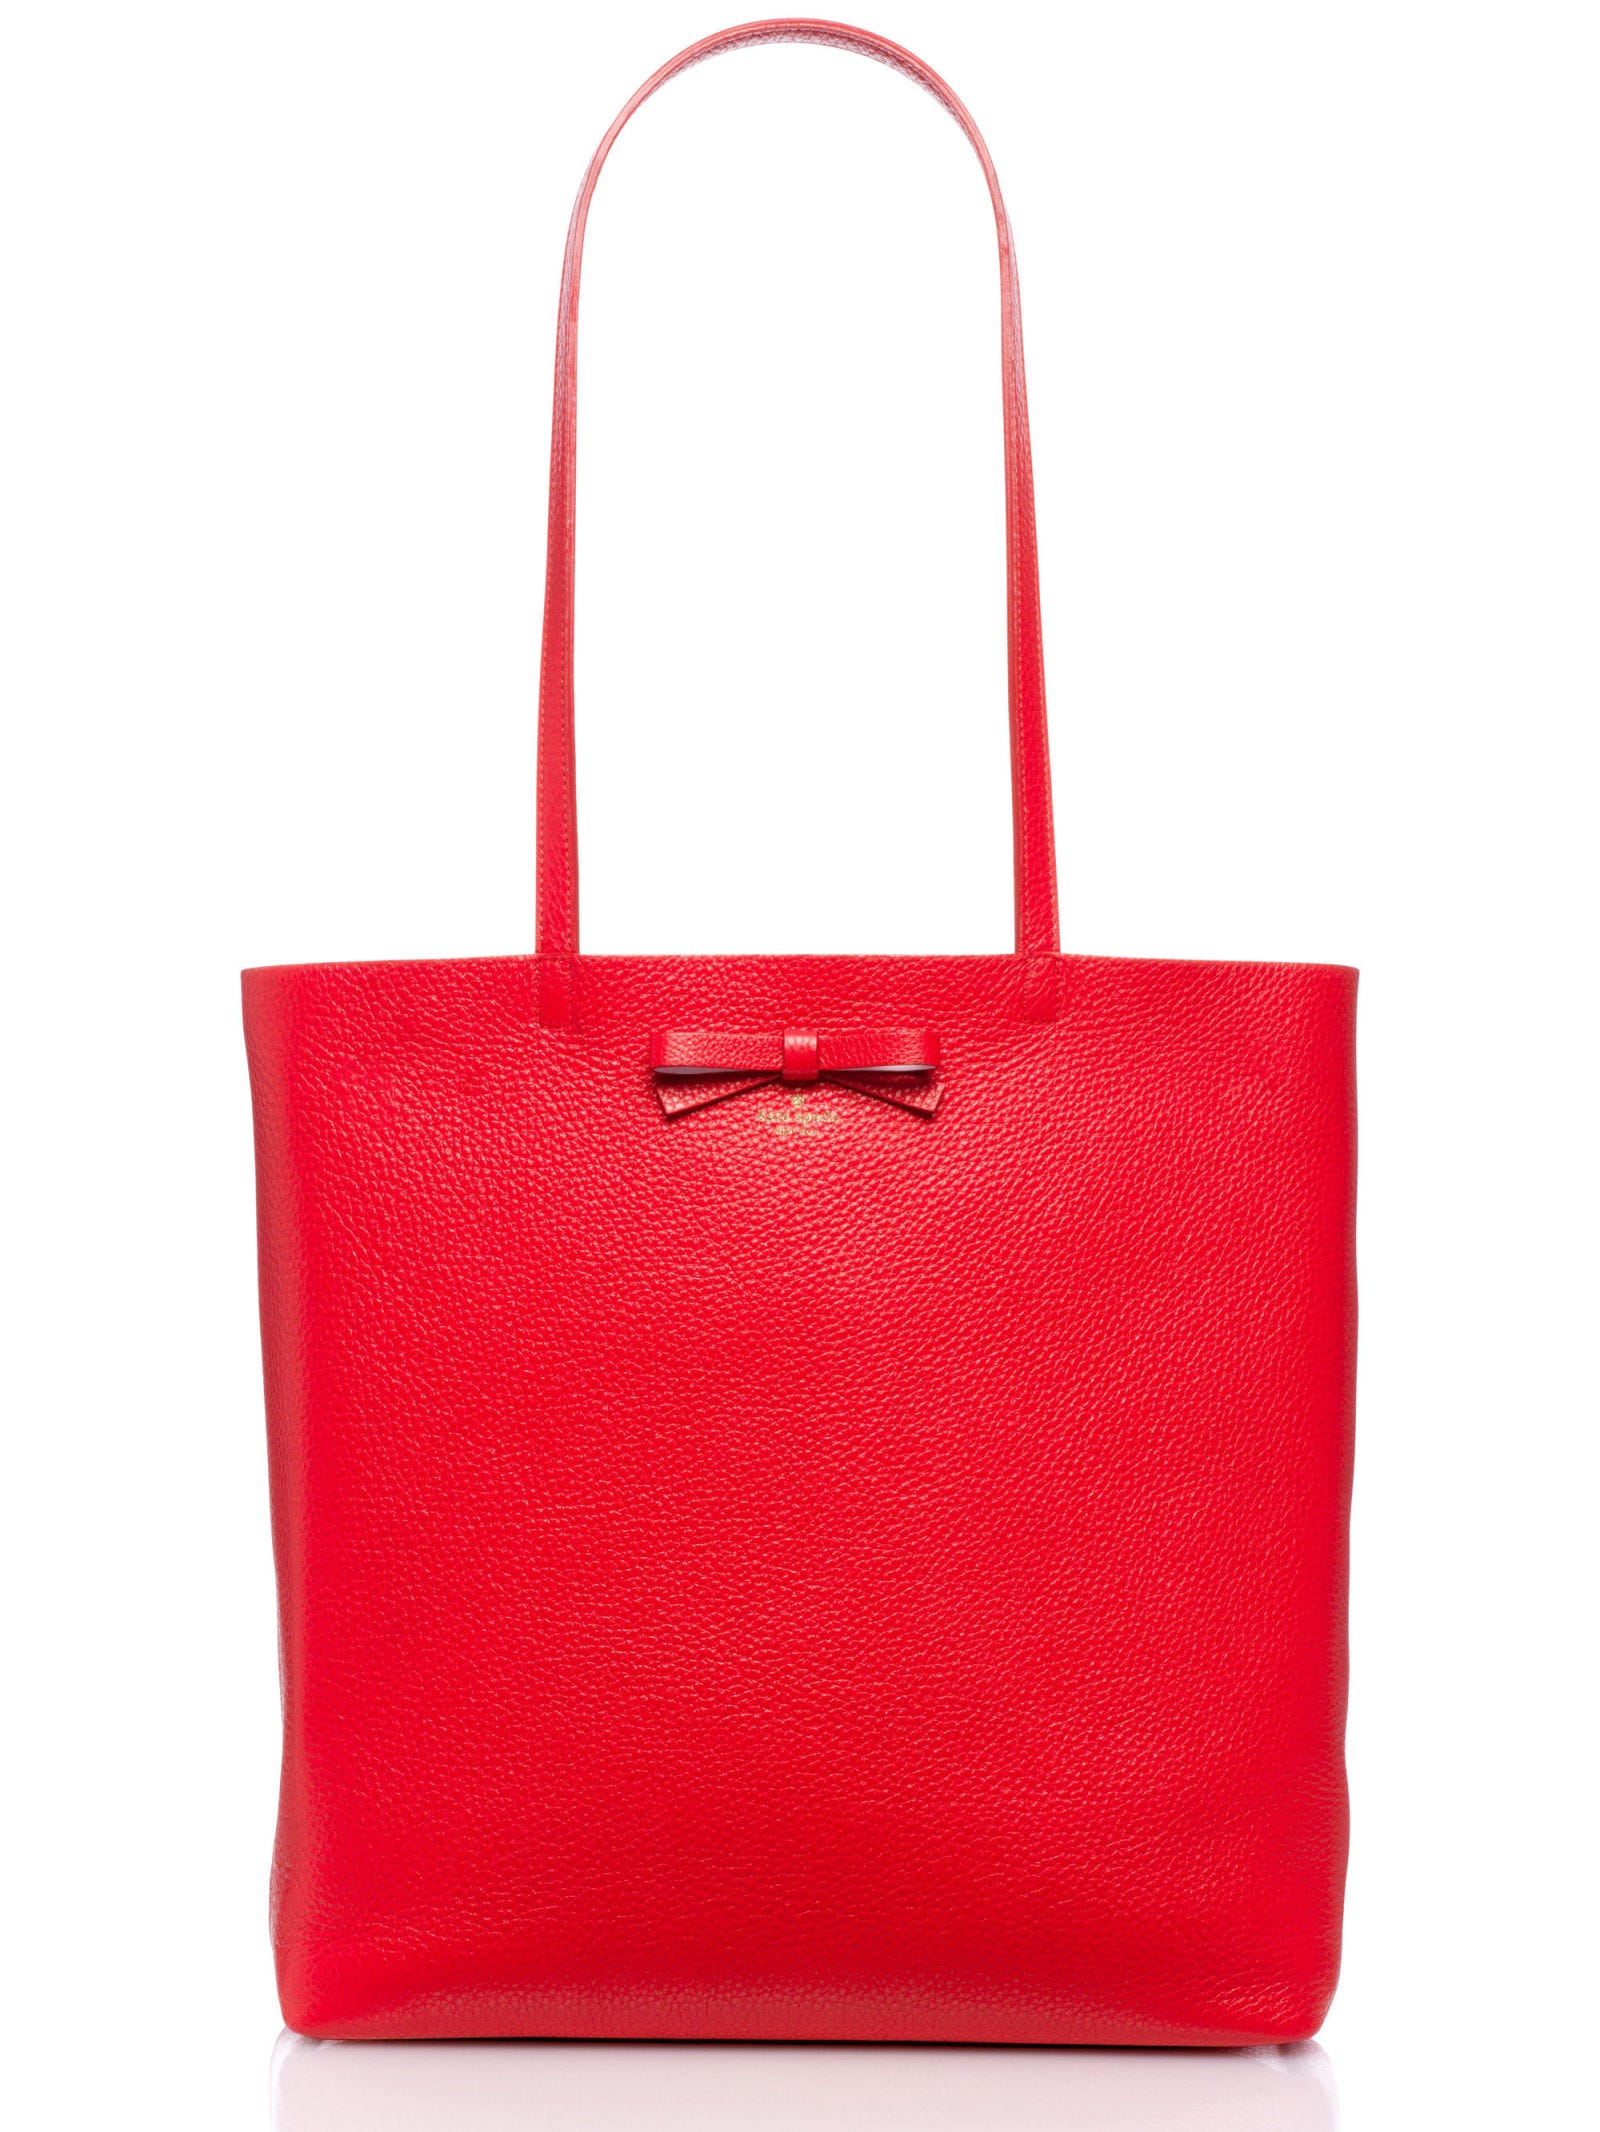 Product, Bag, Red, White, Fashion accessory, Style, Beauty, Shoulder bag, Carmine, Luggage and bags,